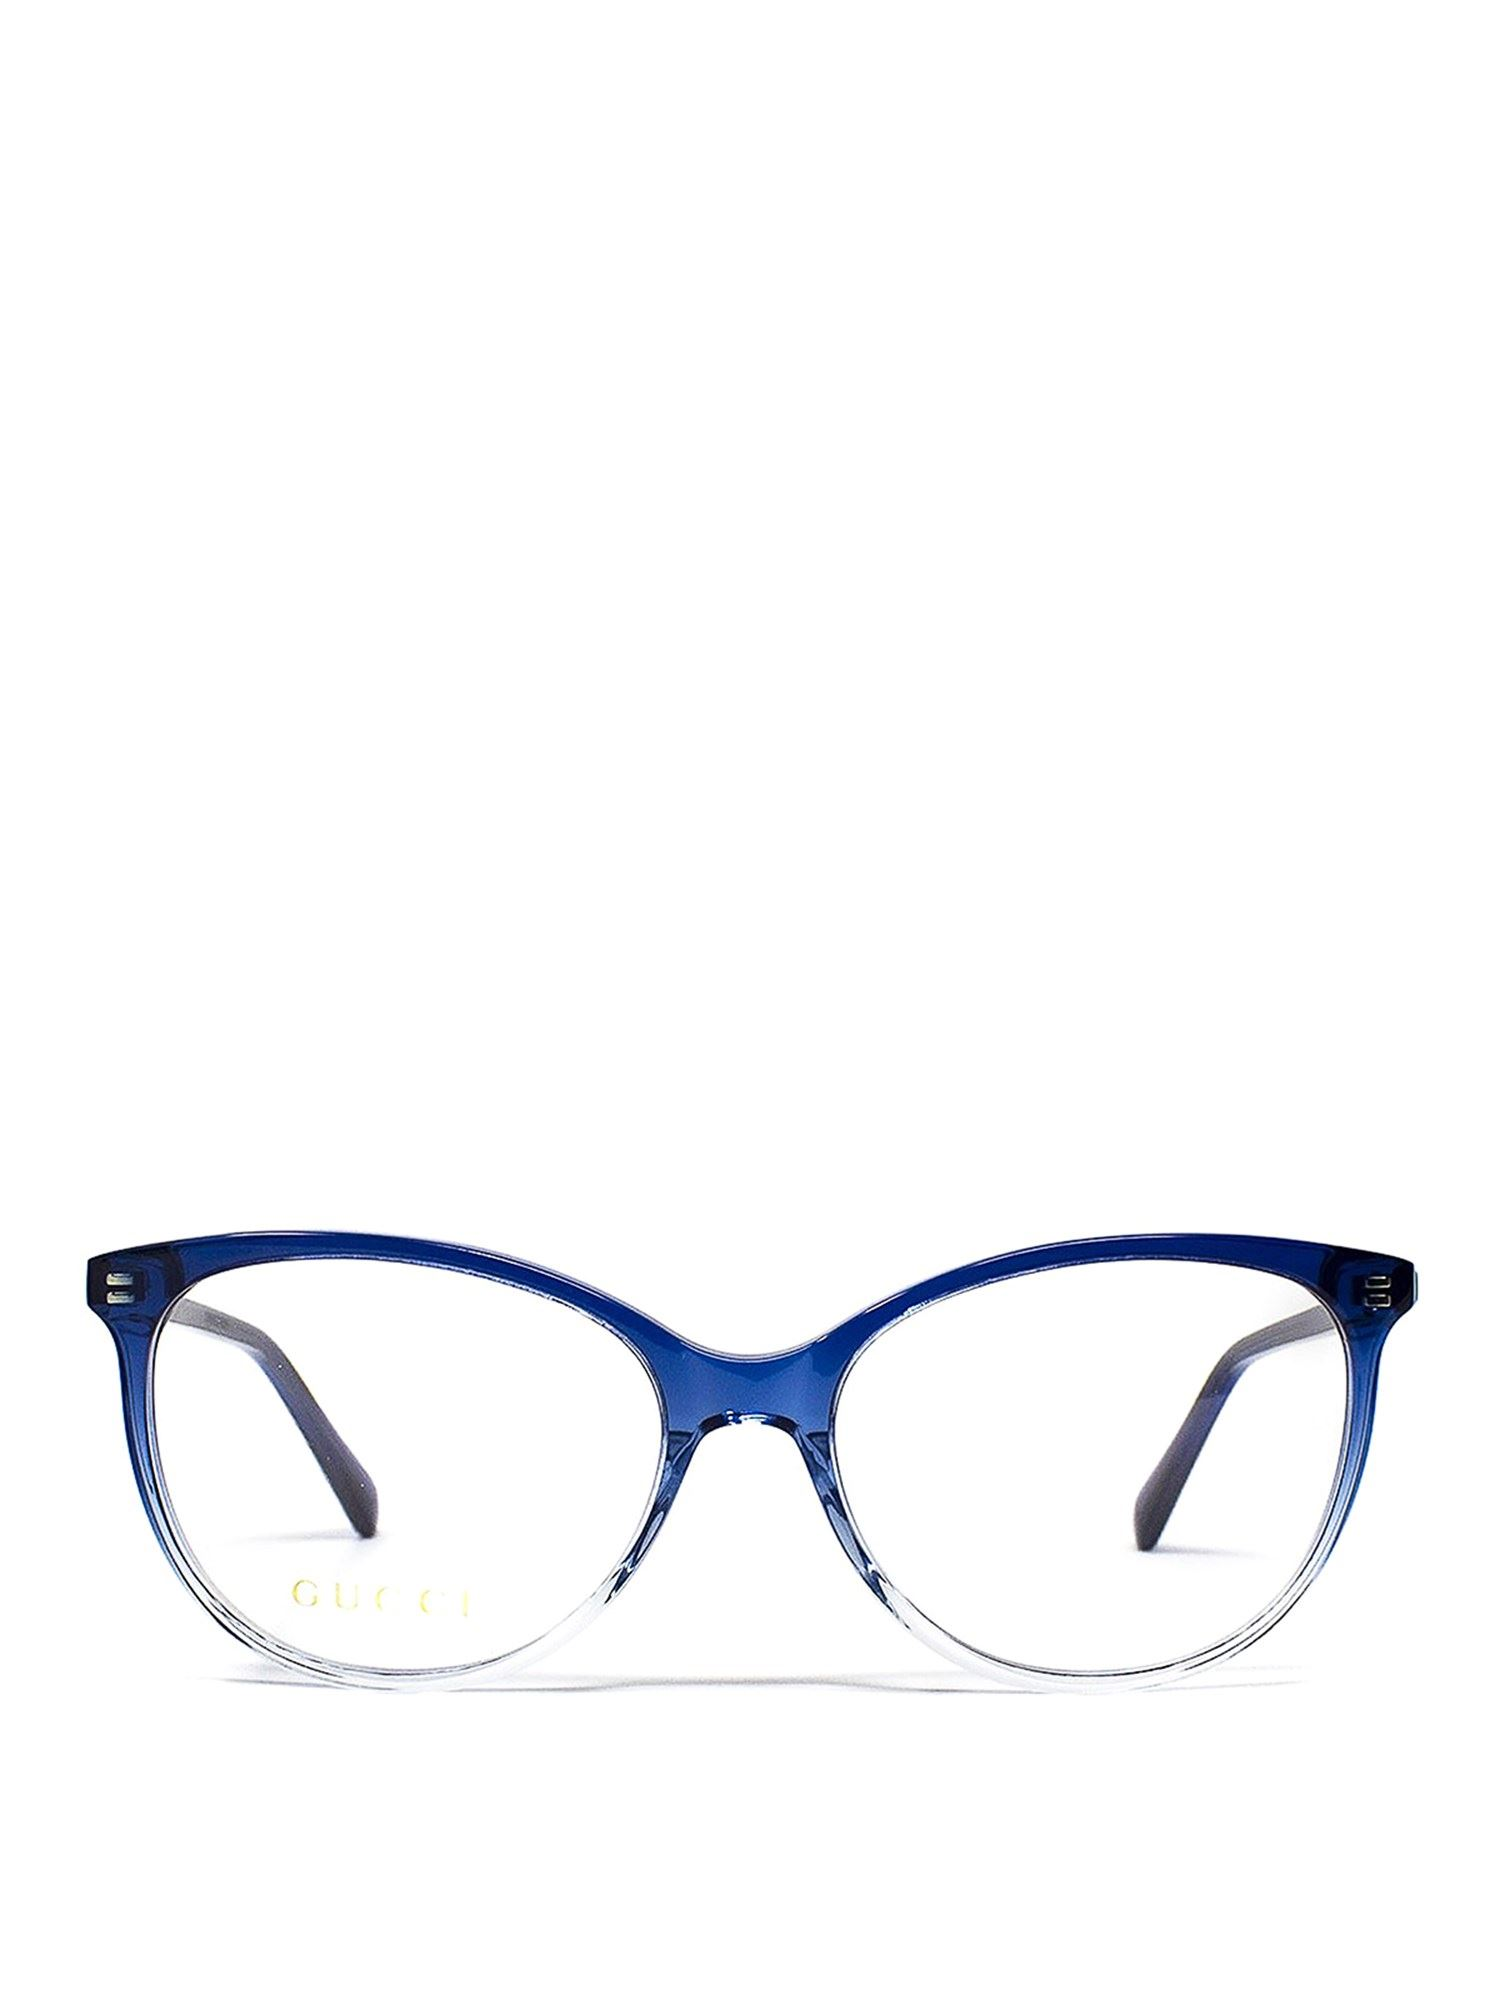 GUCCI TWO-TONE ACETATE OVAL OPTICAL GLASSES